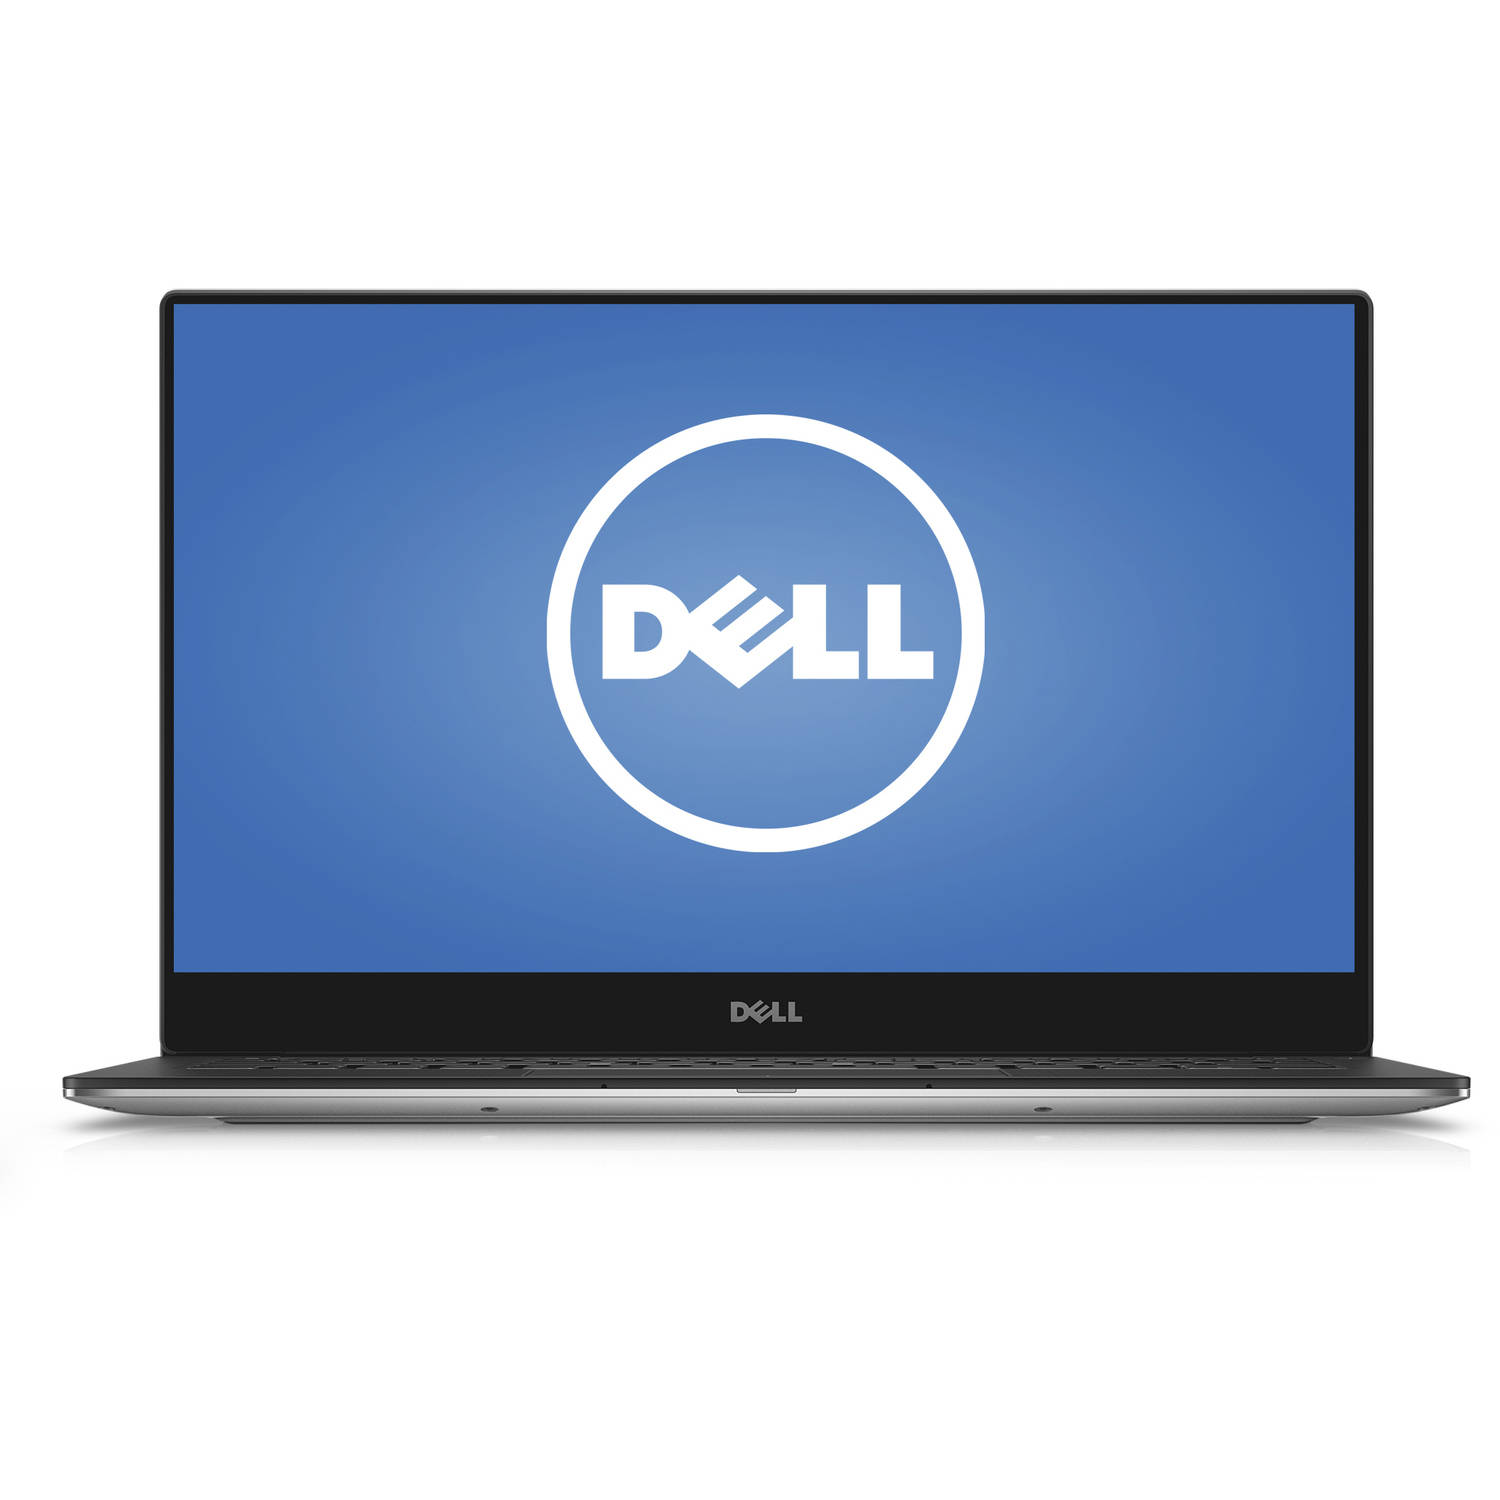 """Dell Silver 13.3"""" XPS 13 Laptop PC with Intel Core i7-6560U Processor, 8GB Memory, touch screen, 256GB Solid State Drive and Windows 10 Home"""